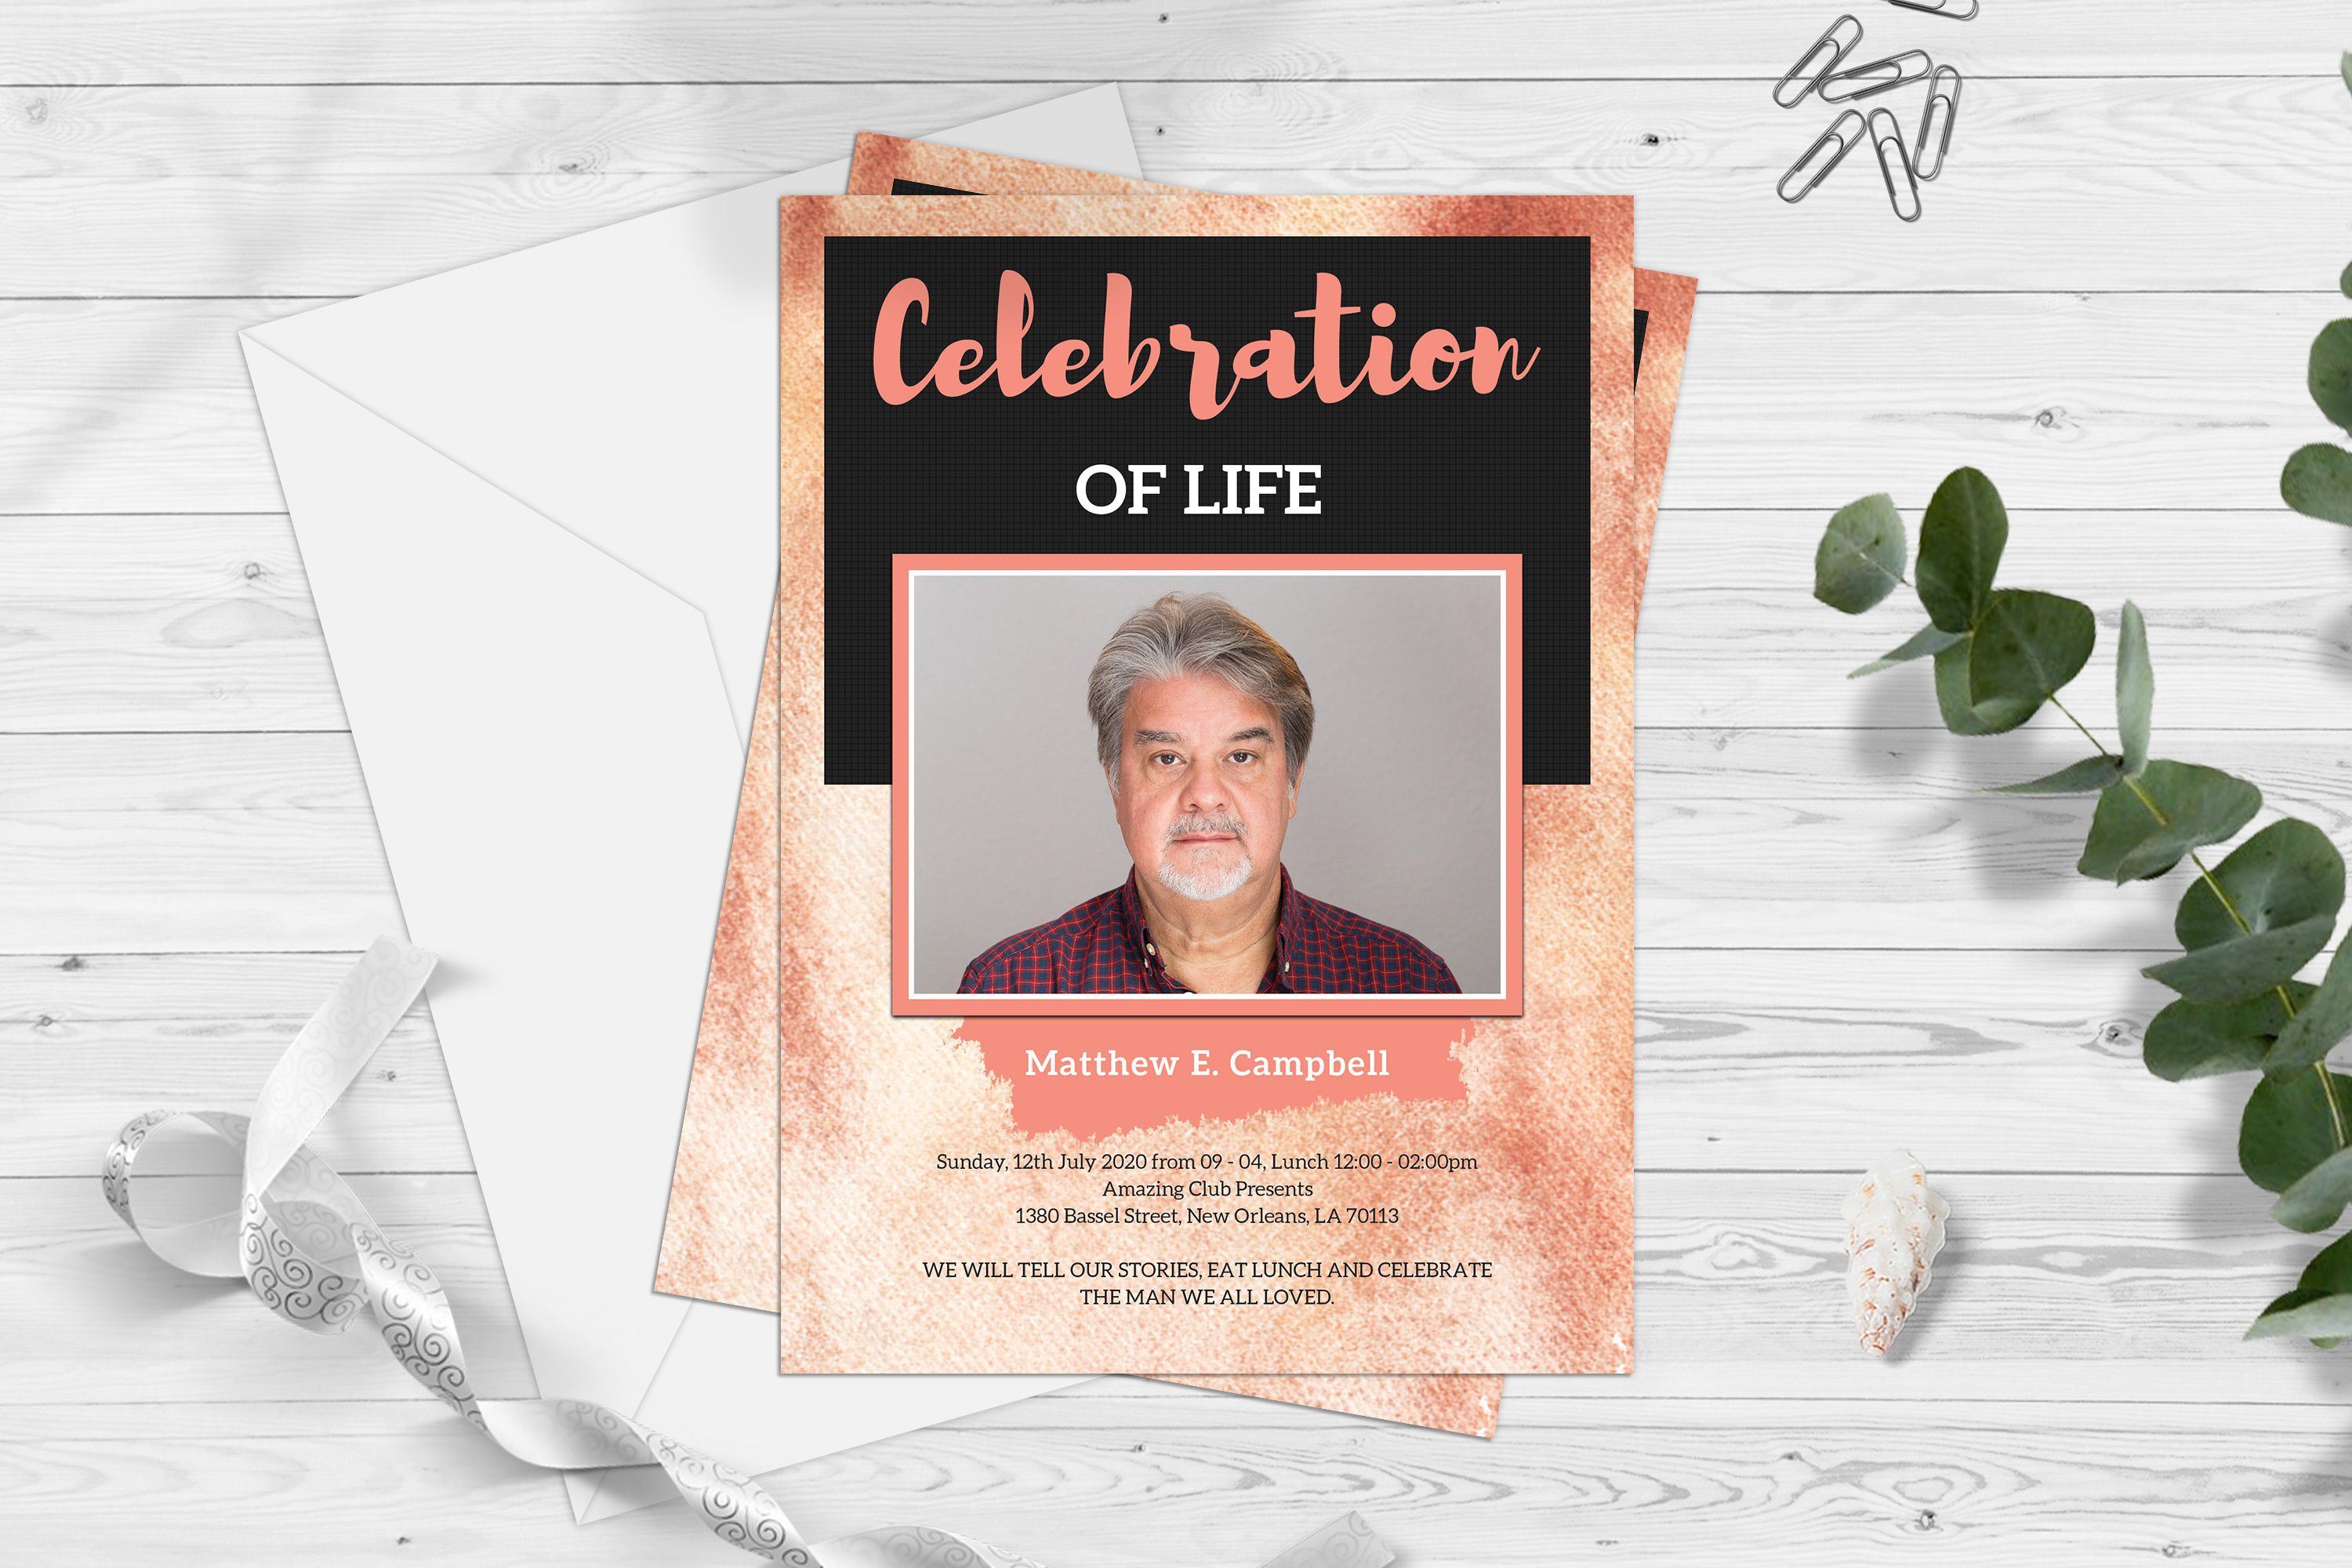 004 Staggering Celebration Of Life Template Image  Powerpoint Program Download Announcement FreeFull